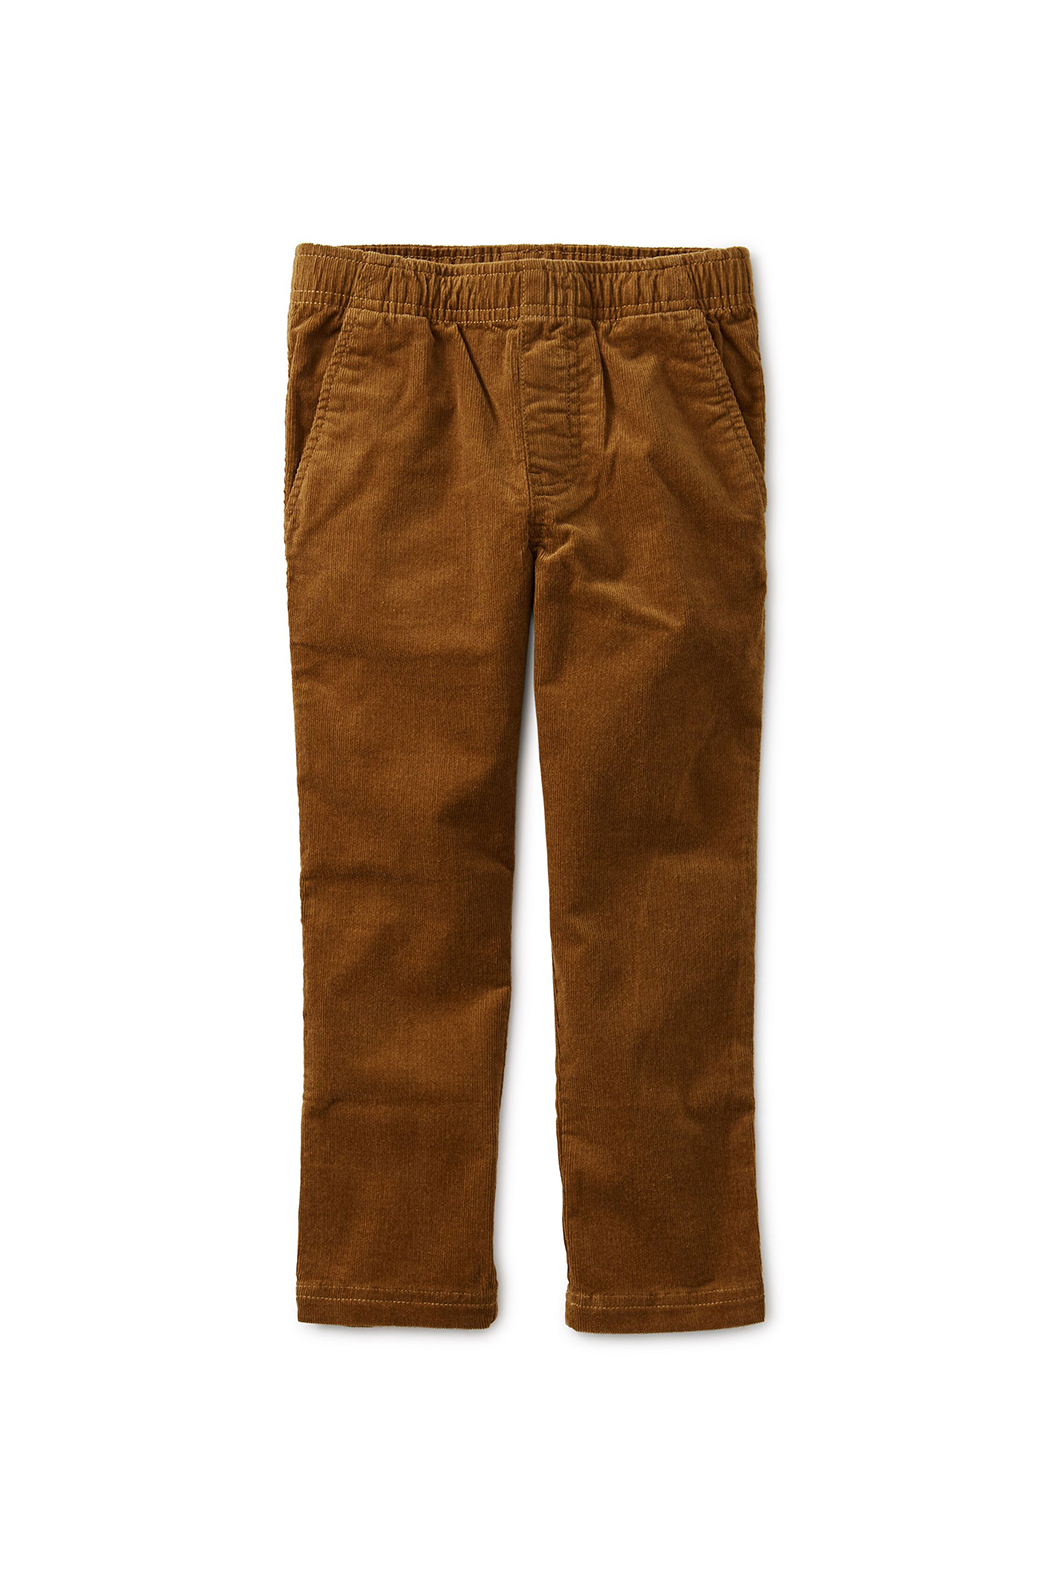 Tea Collection Slim Fit Corduroy Pant - Front Cropped Image